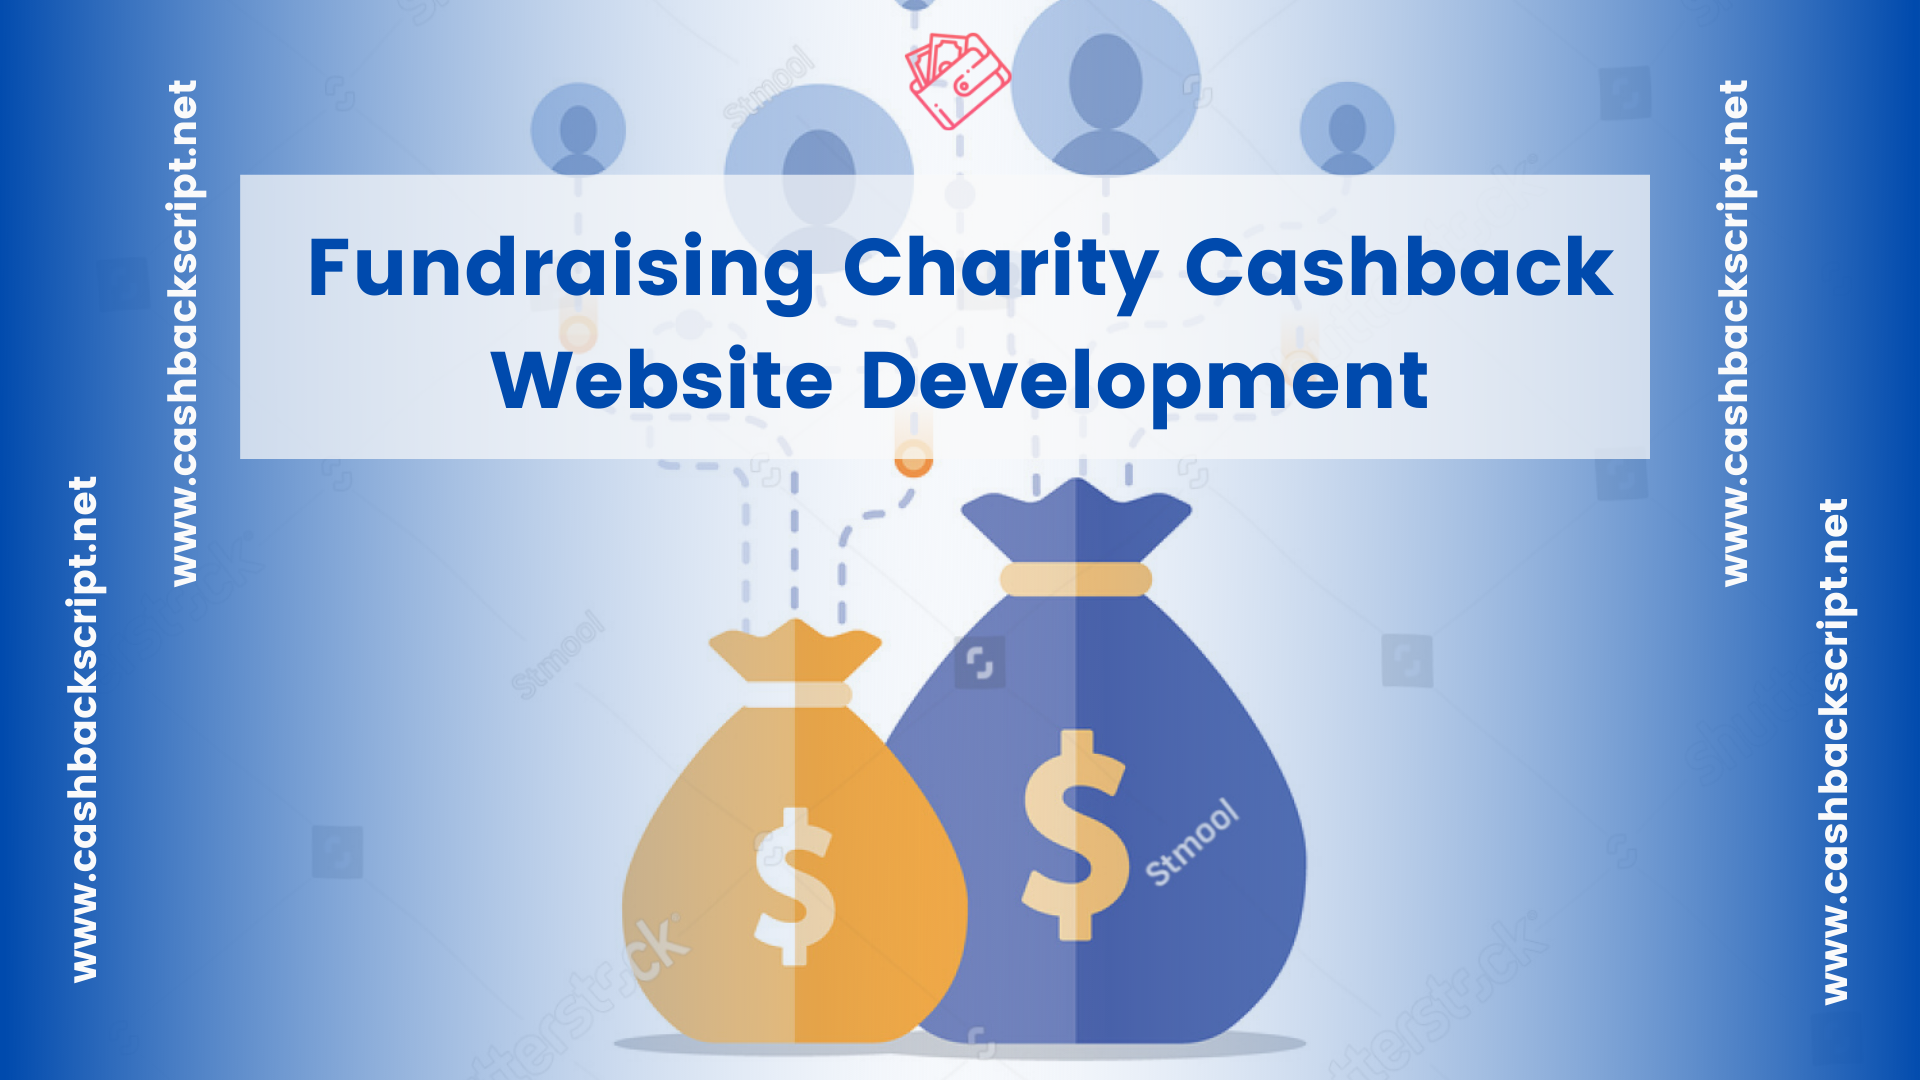 Fundraising Charity Cashback Website Development